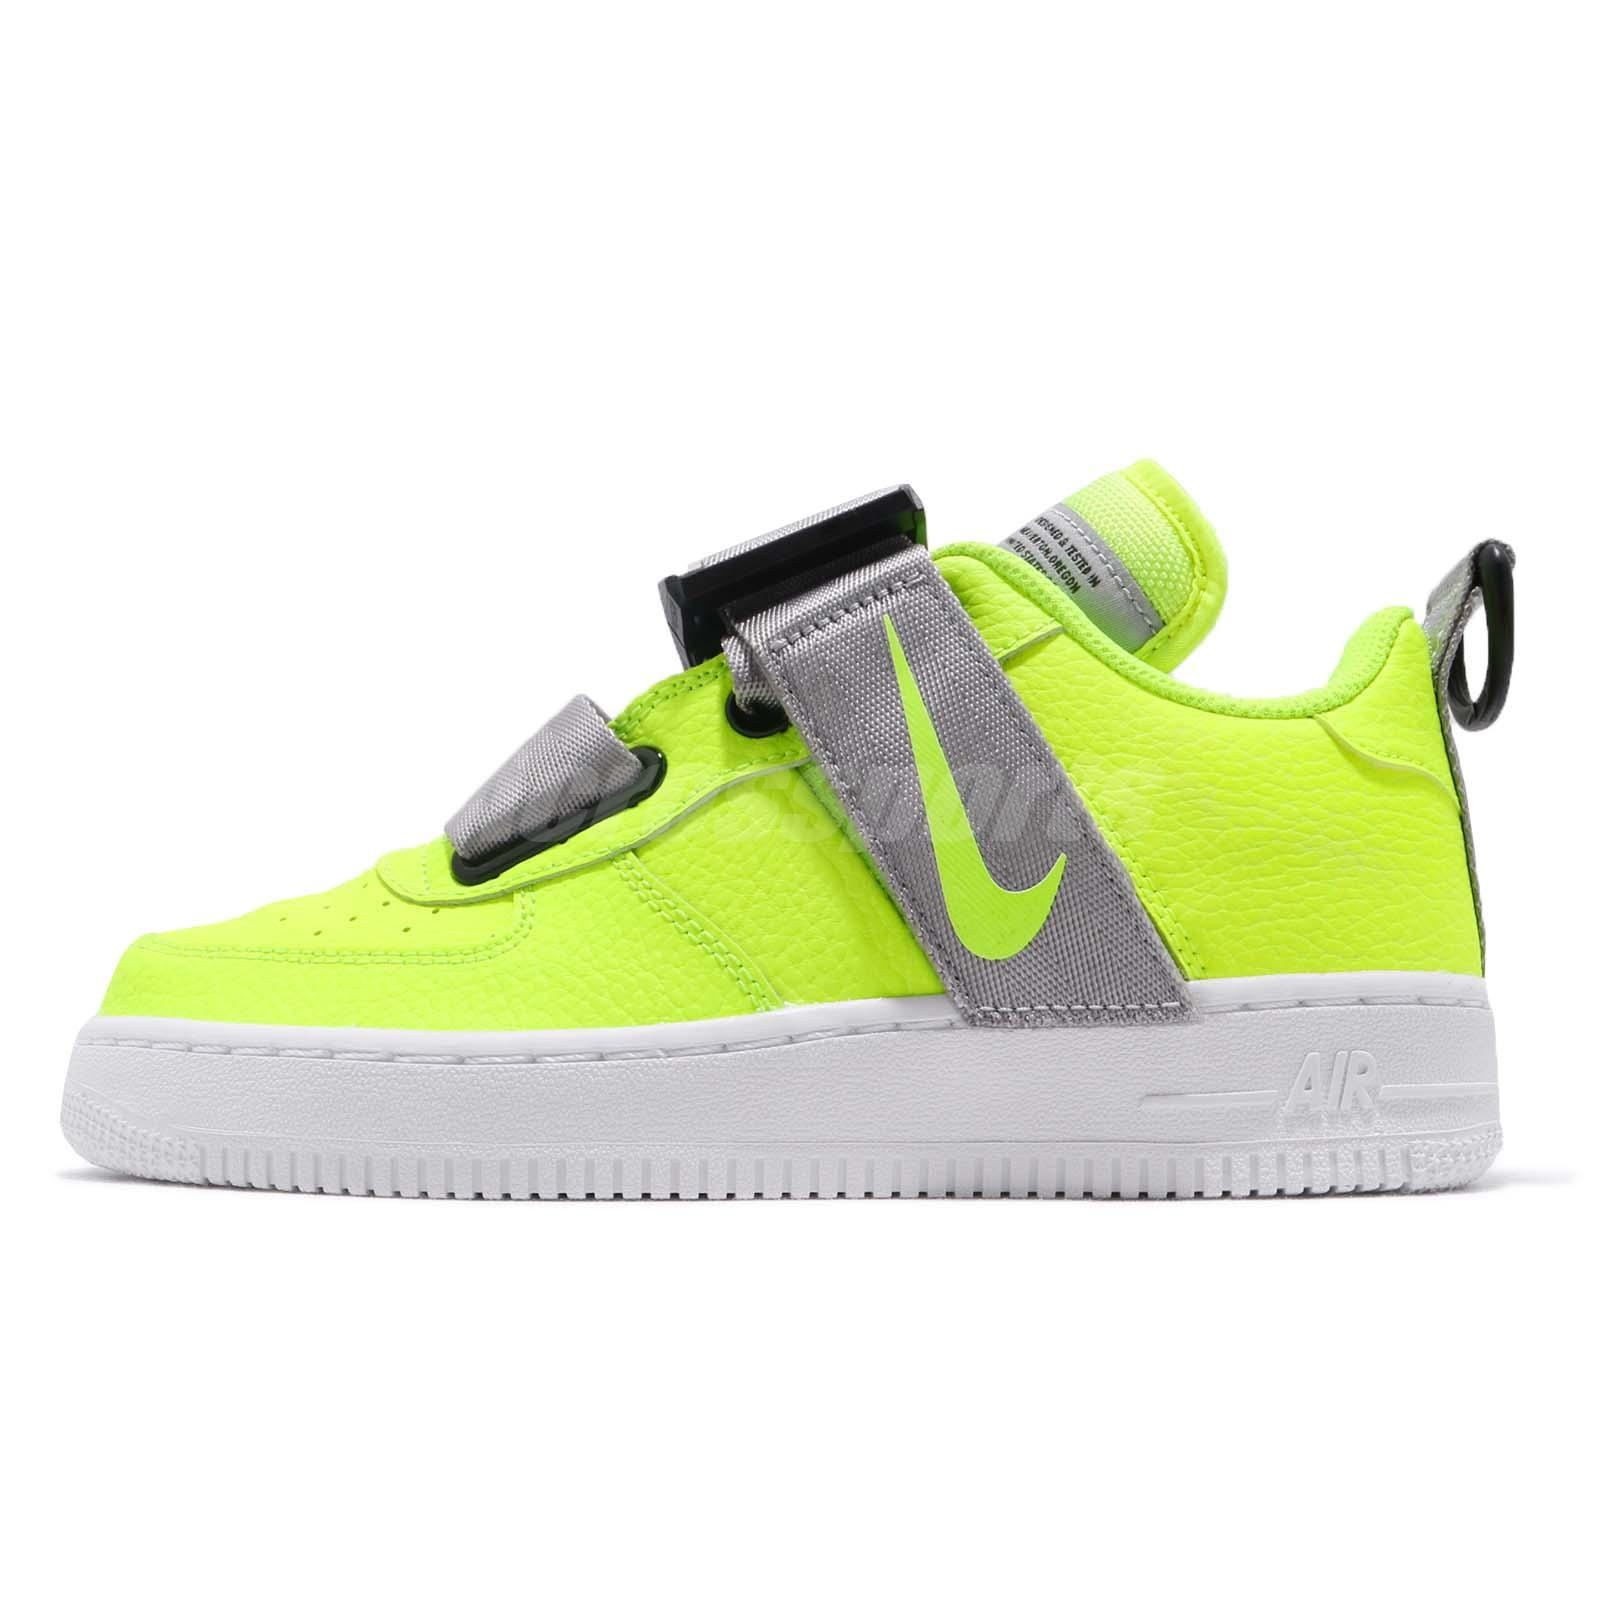 finest selection 668ce 976bb Nike Air Force 1 Utility GS AF1 Volt Reflect Silver Kid Youth Women  AJ6601-700